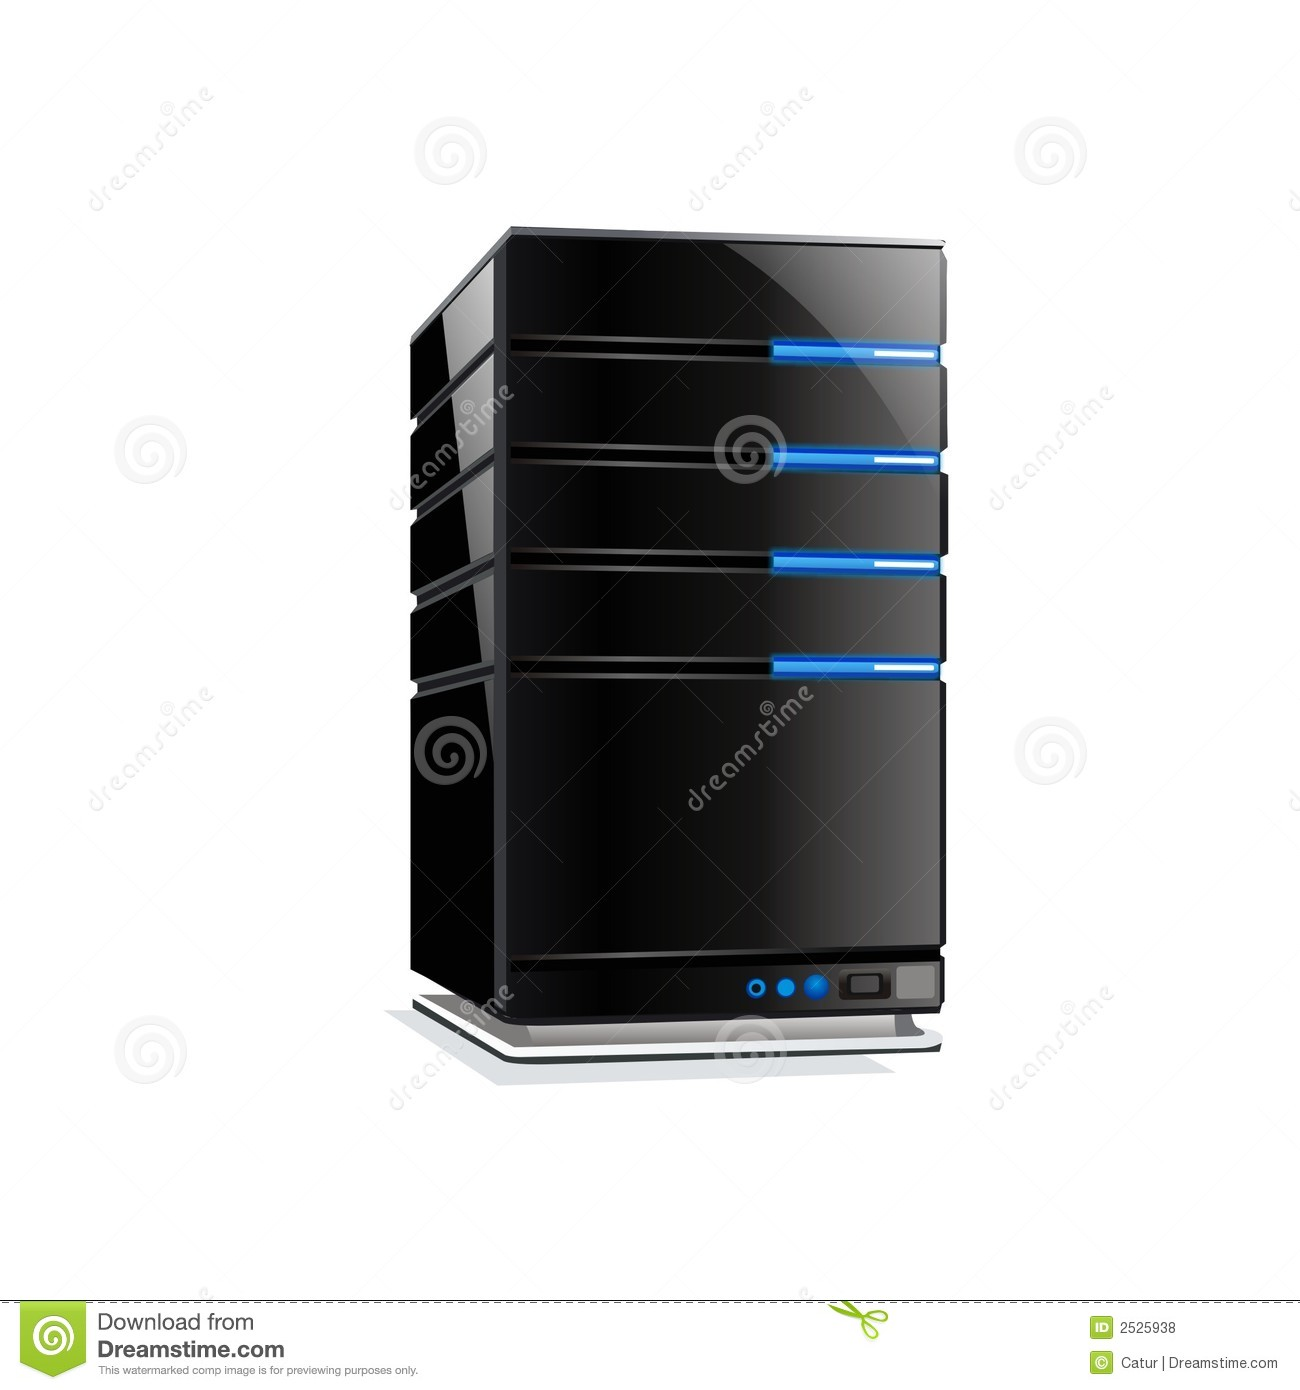 Cool Vector Computer Server Stock Vector - Illustration of ...